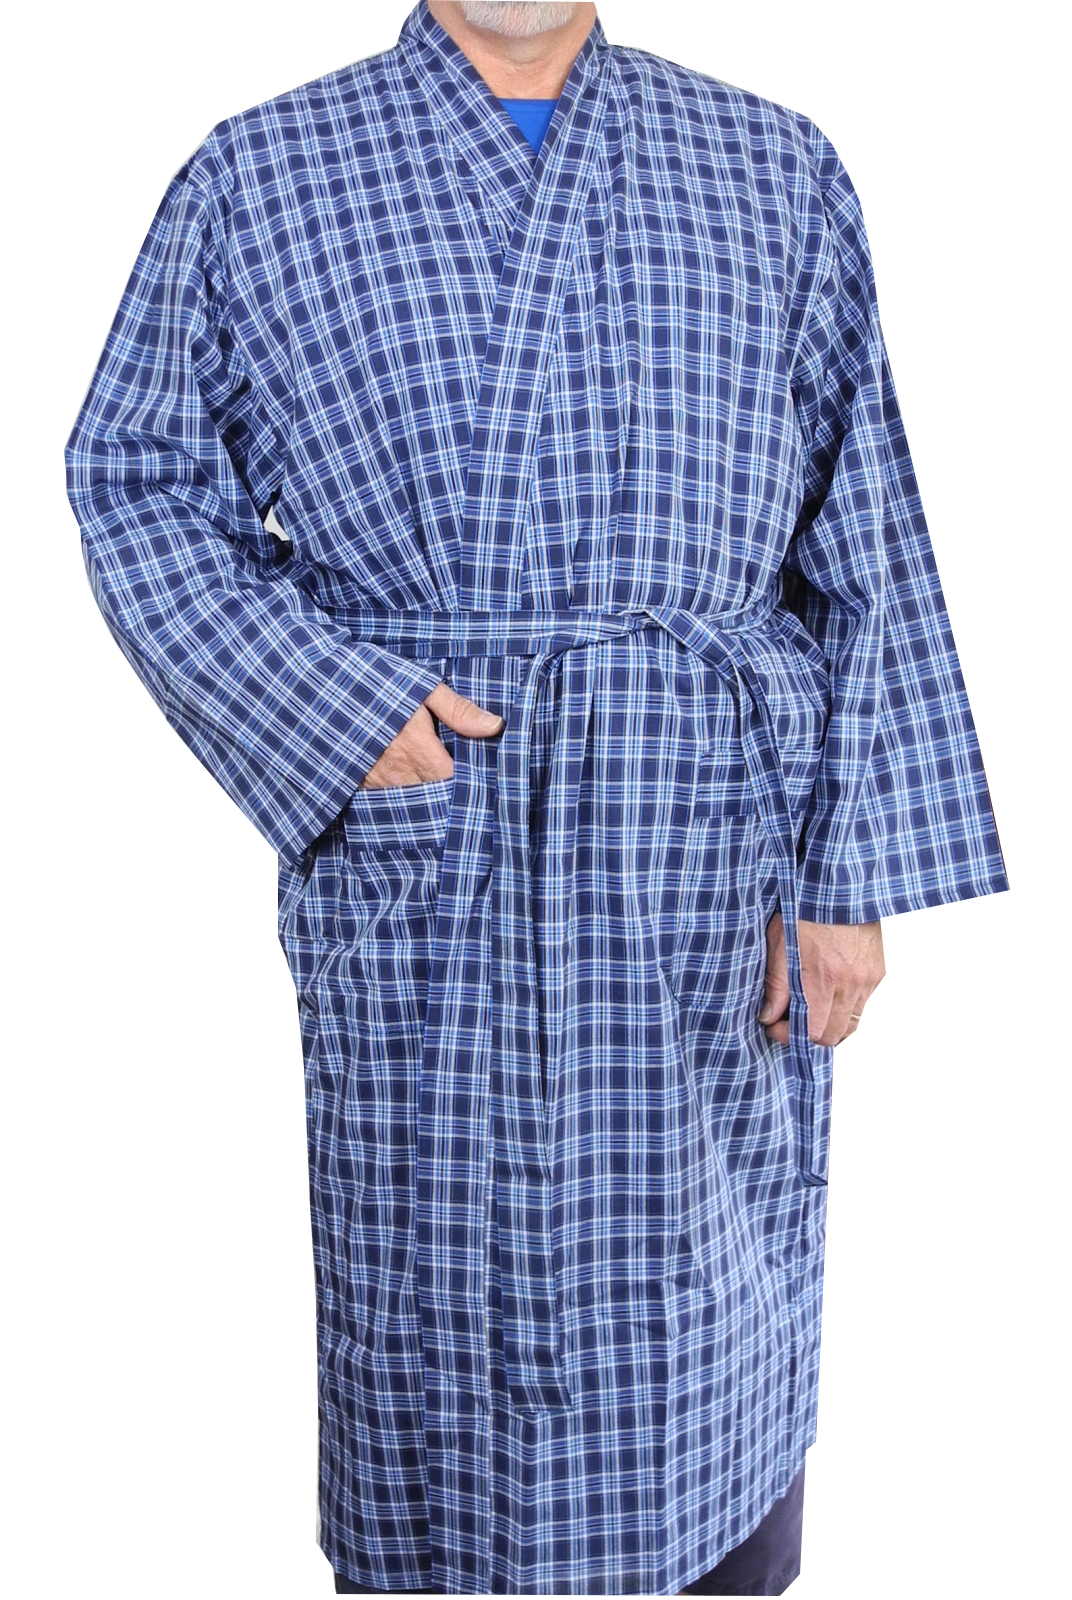 Cotton On Dressing Gown Mens Lightweight Polyester Cotton Dressing Gown Robe Blue